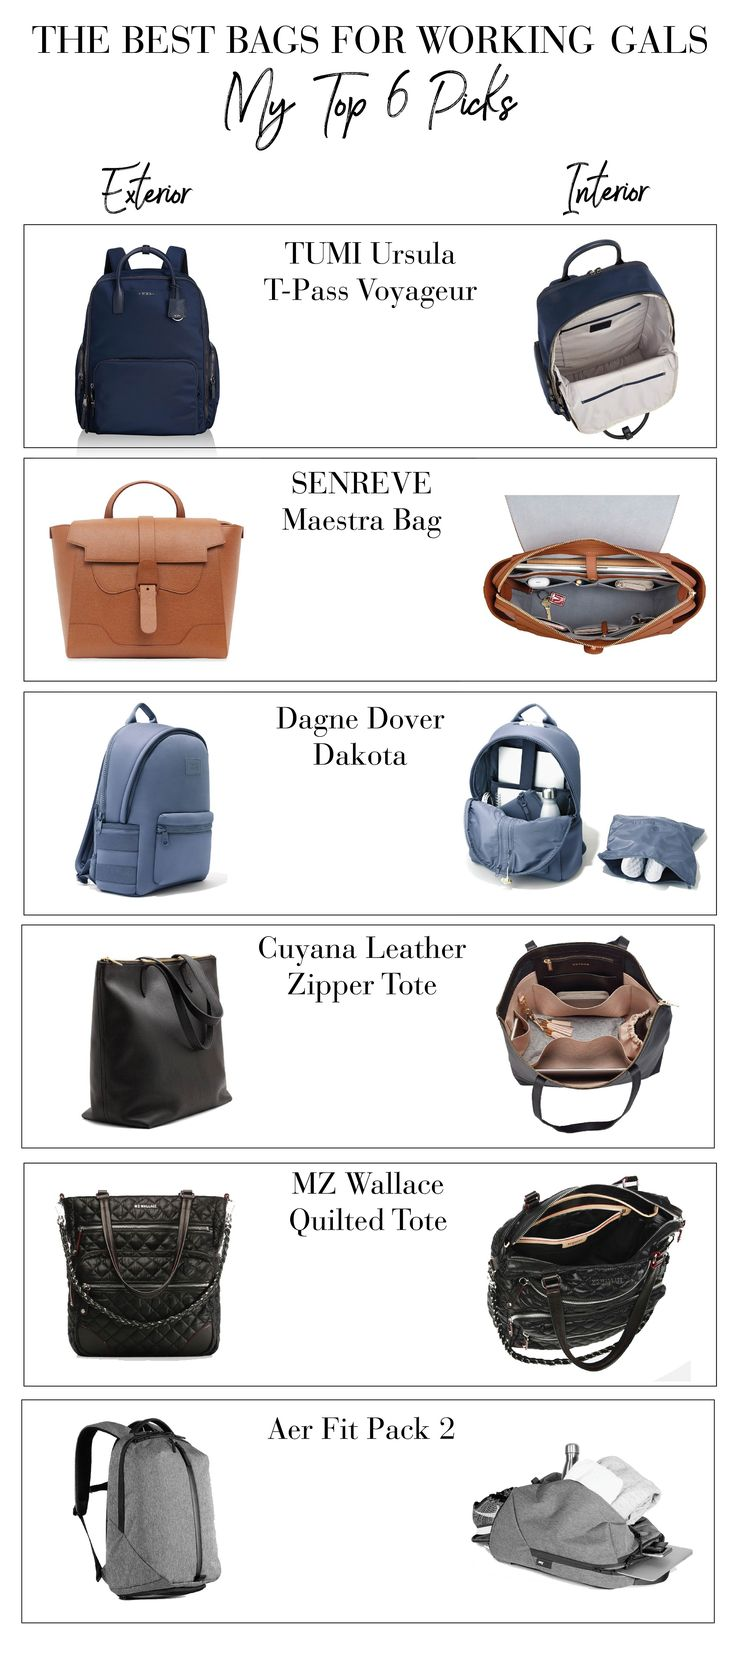 The Best Bags for Working Women